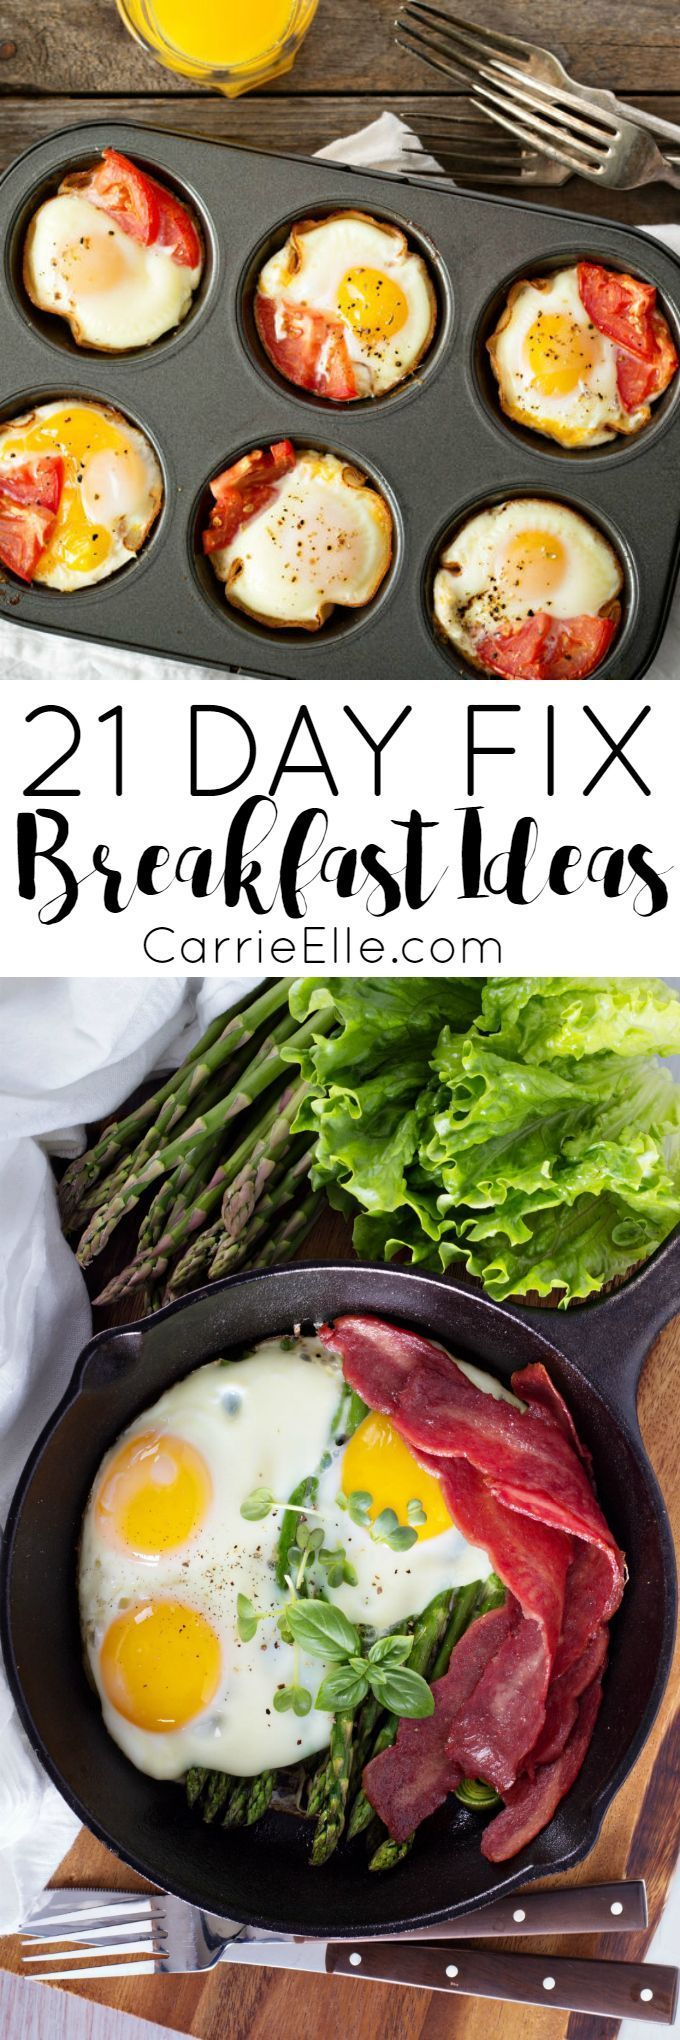 21 Day Fix Breakfast Ideas